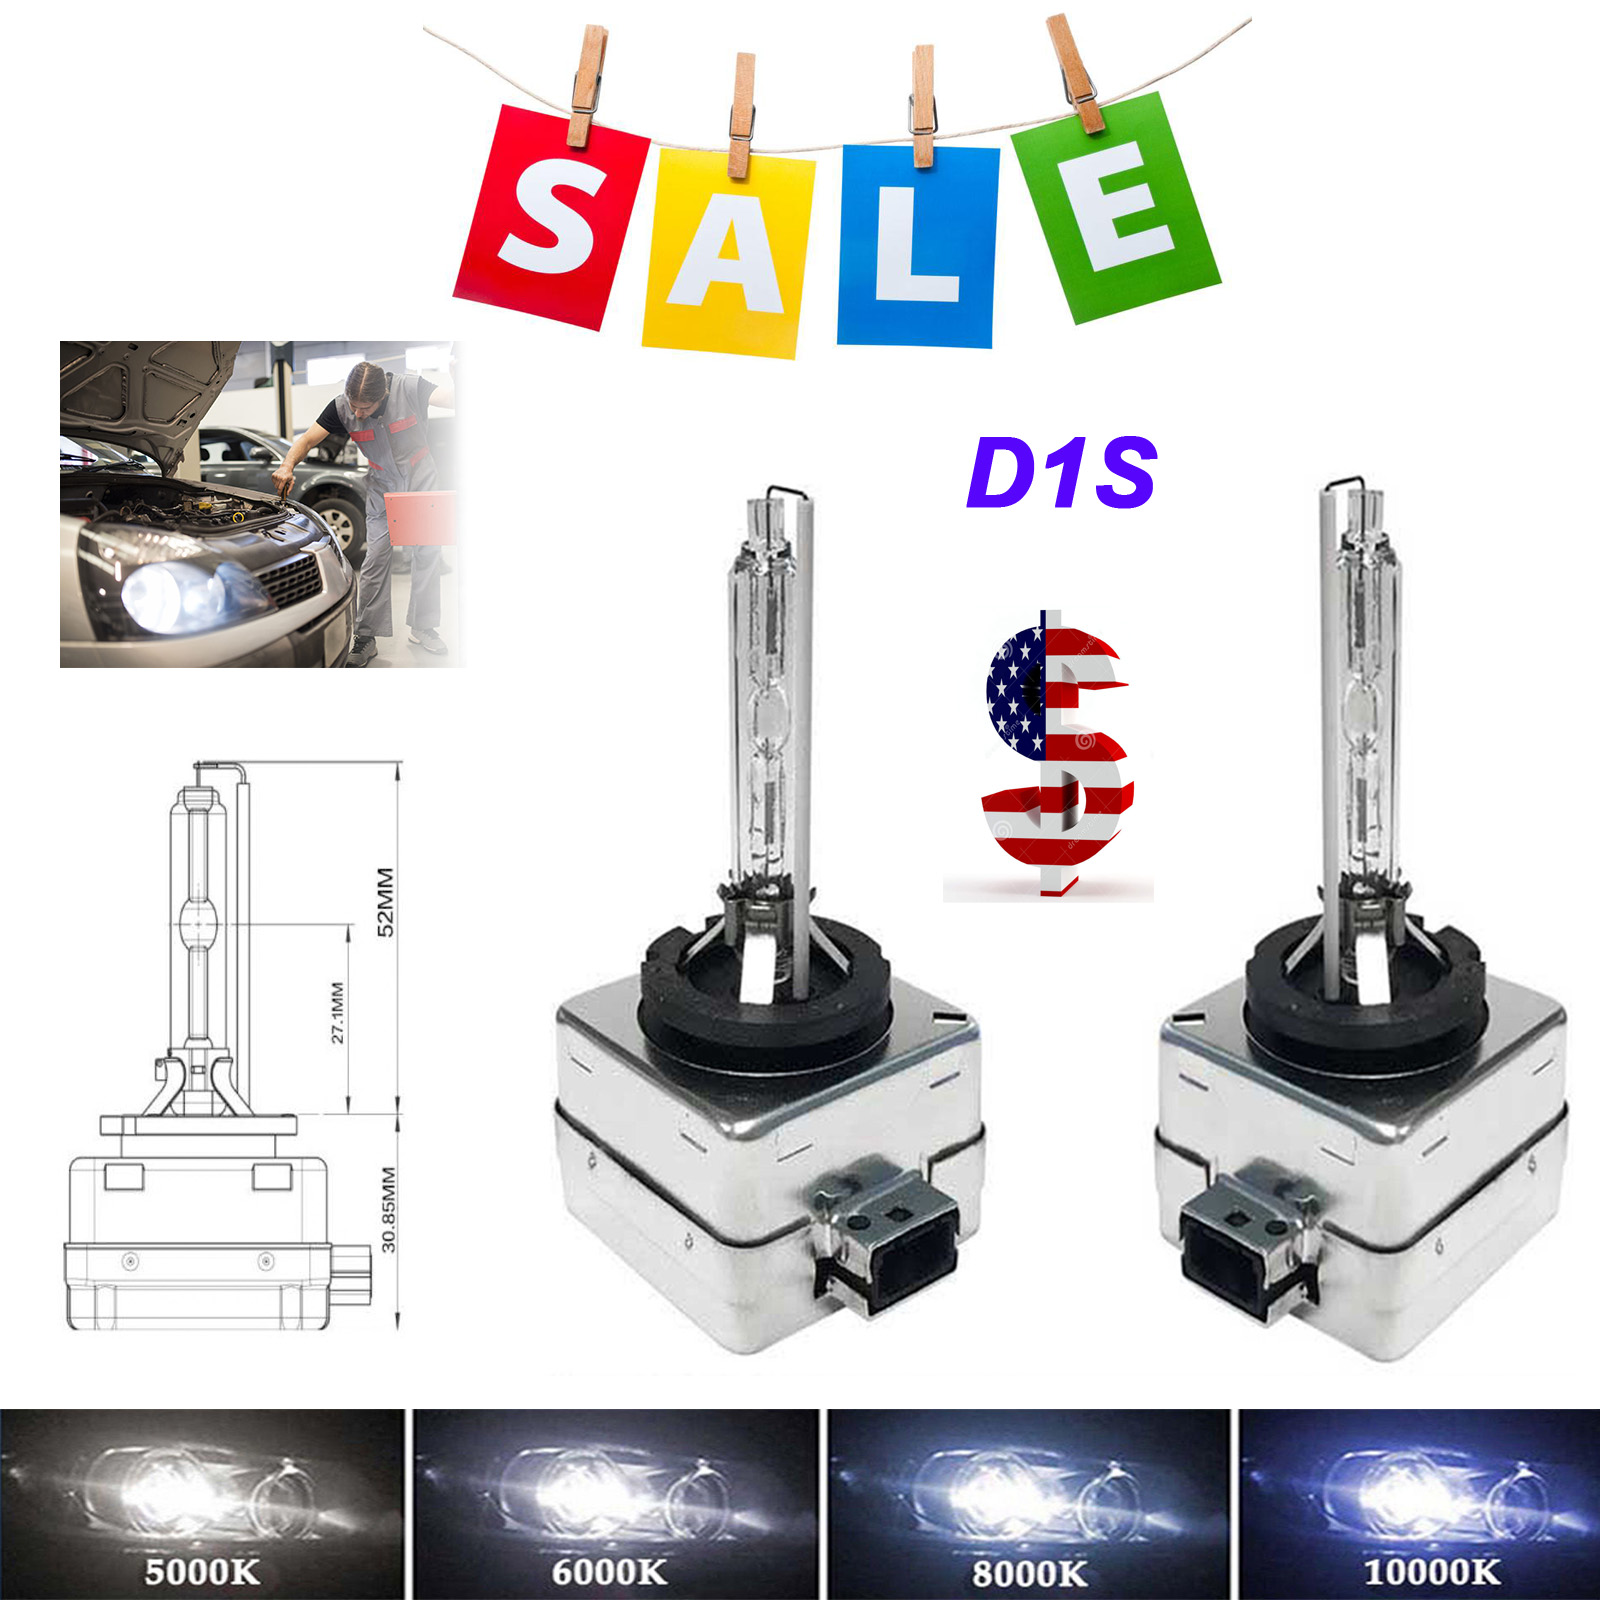 D1S HID Xenon Bulbs For Headlights Replacement 66141 66142 6000K 8000K 35W NEW